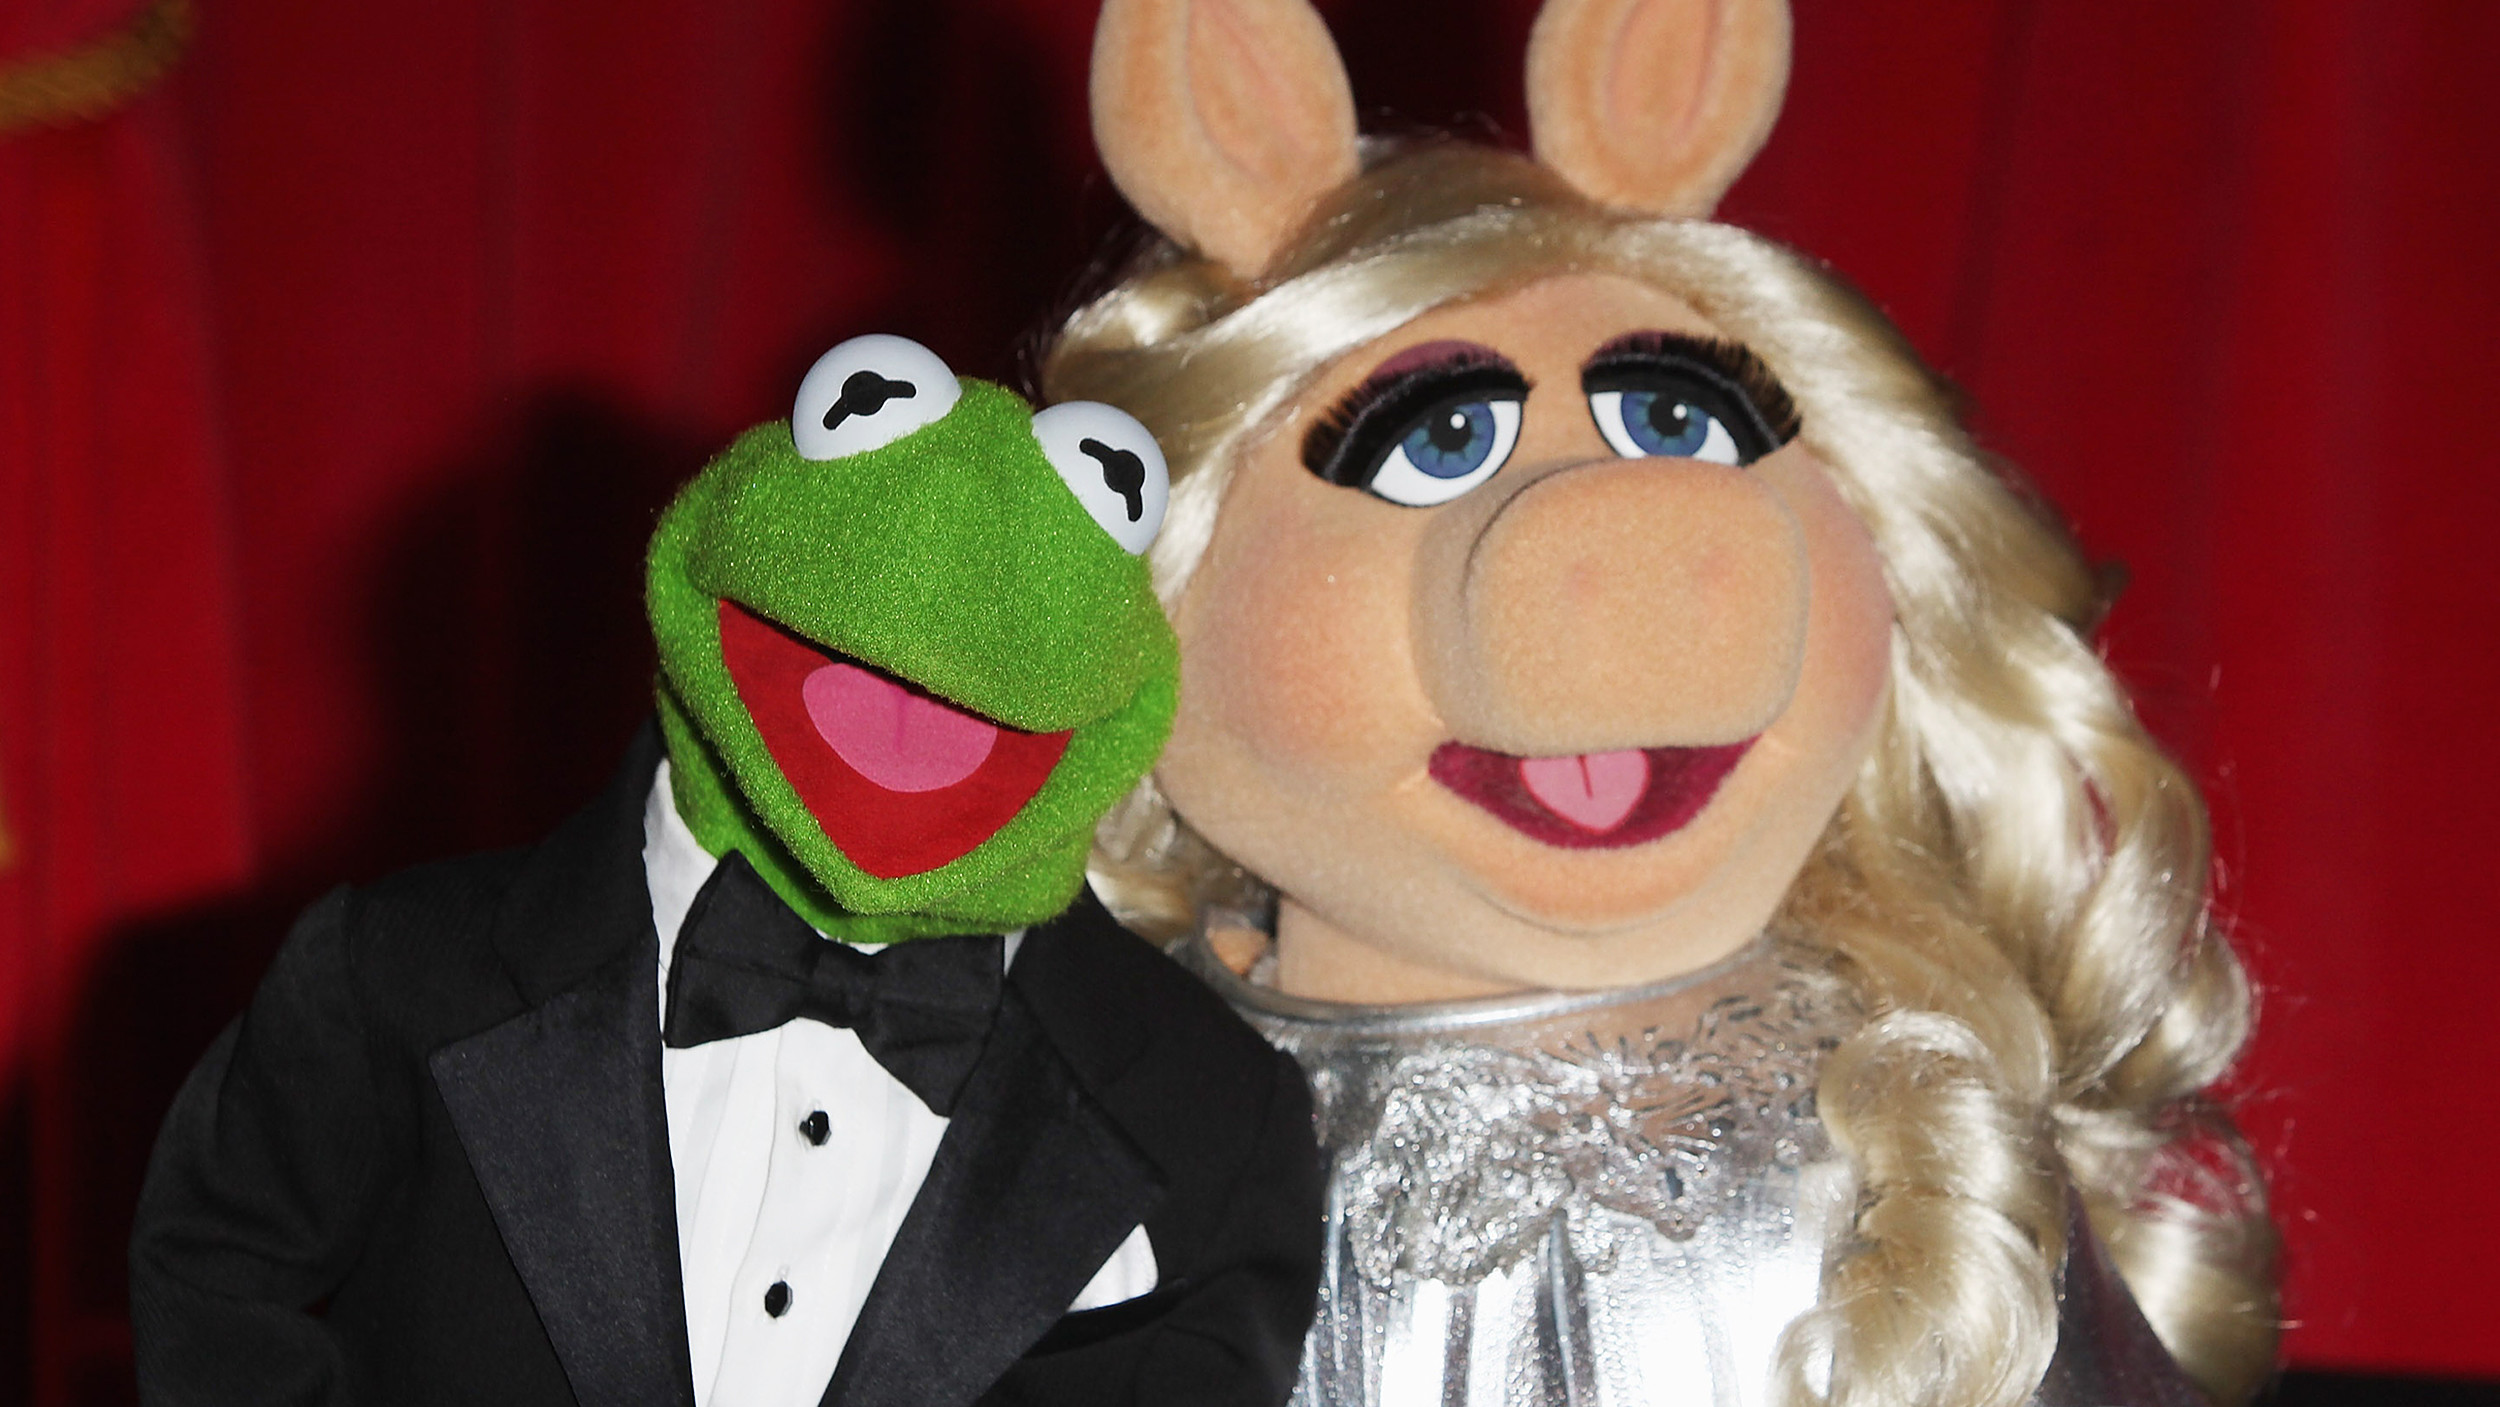 Res: 2500x1407, Kermit the frog and miss piggy - photo#3